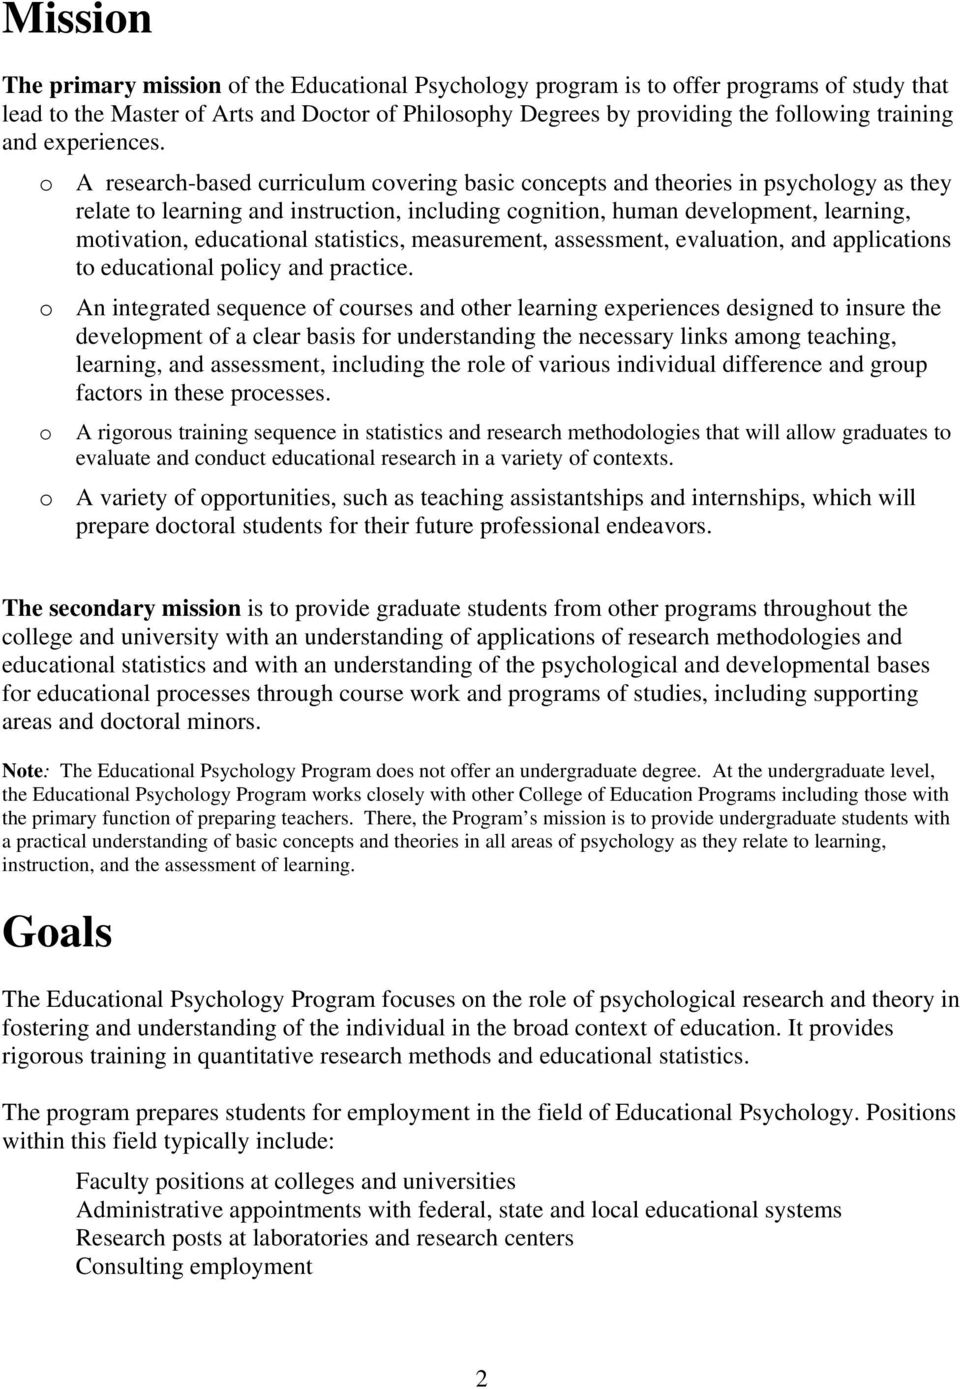 o A research-based curriculum covering basic concepts and theories in psychology as they relate to learning and instruction, including cognition, human development, learning, motivation, educational